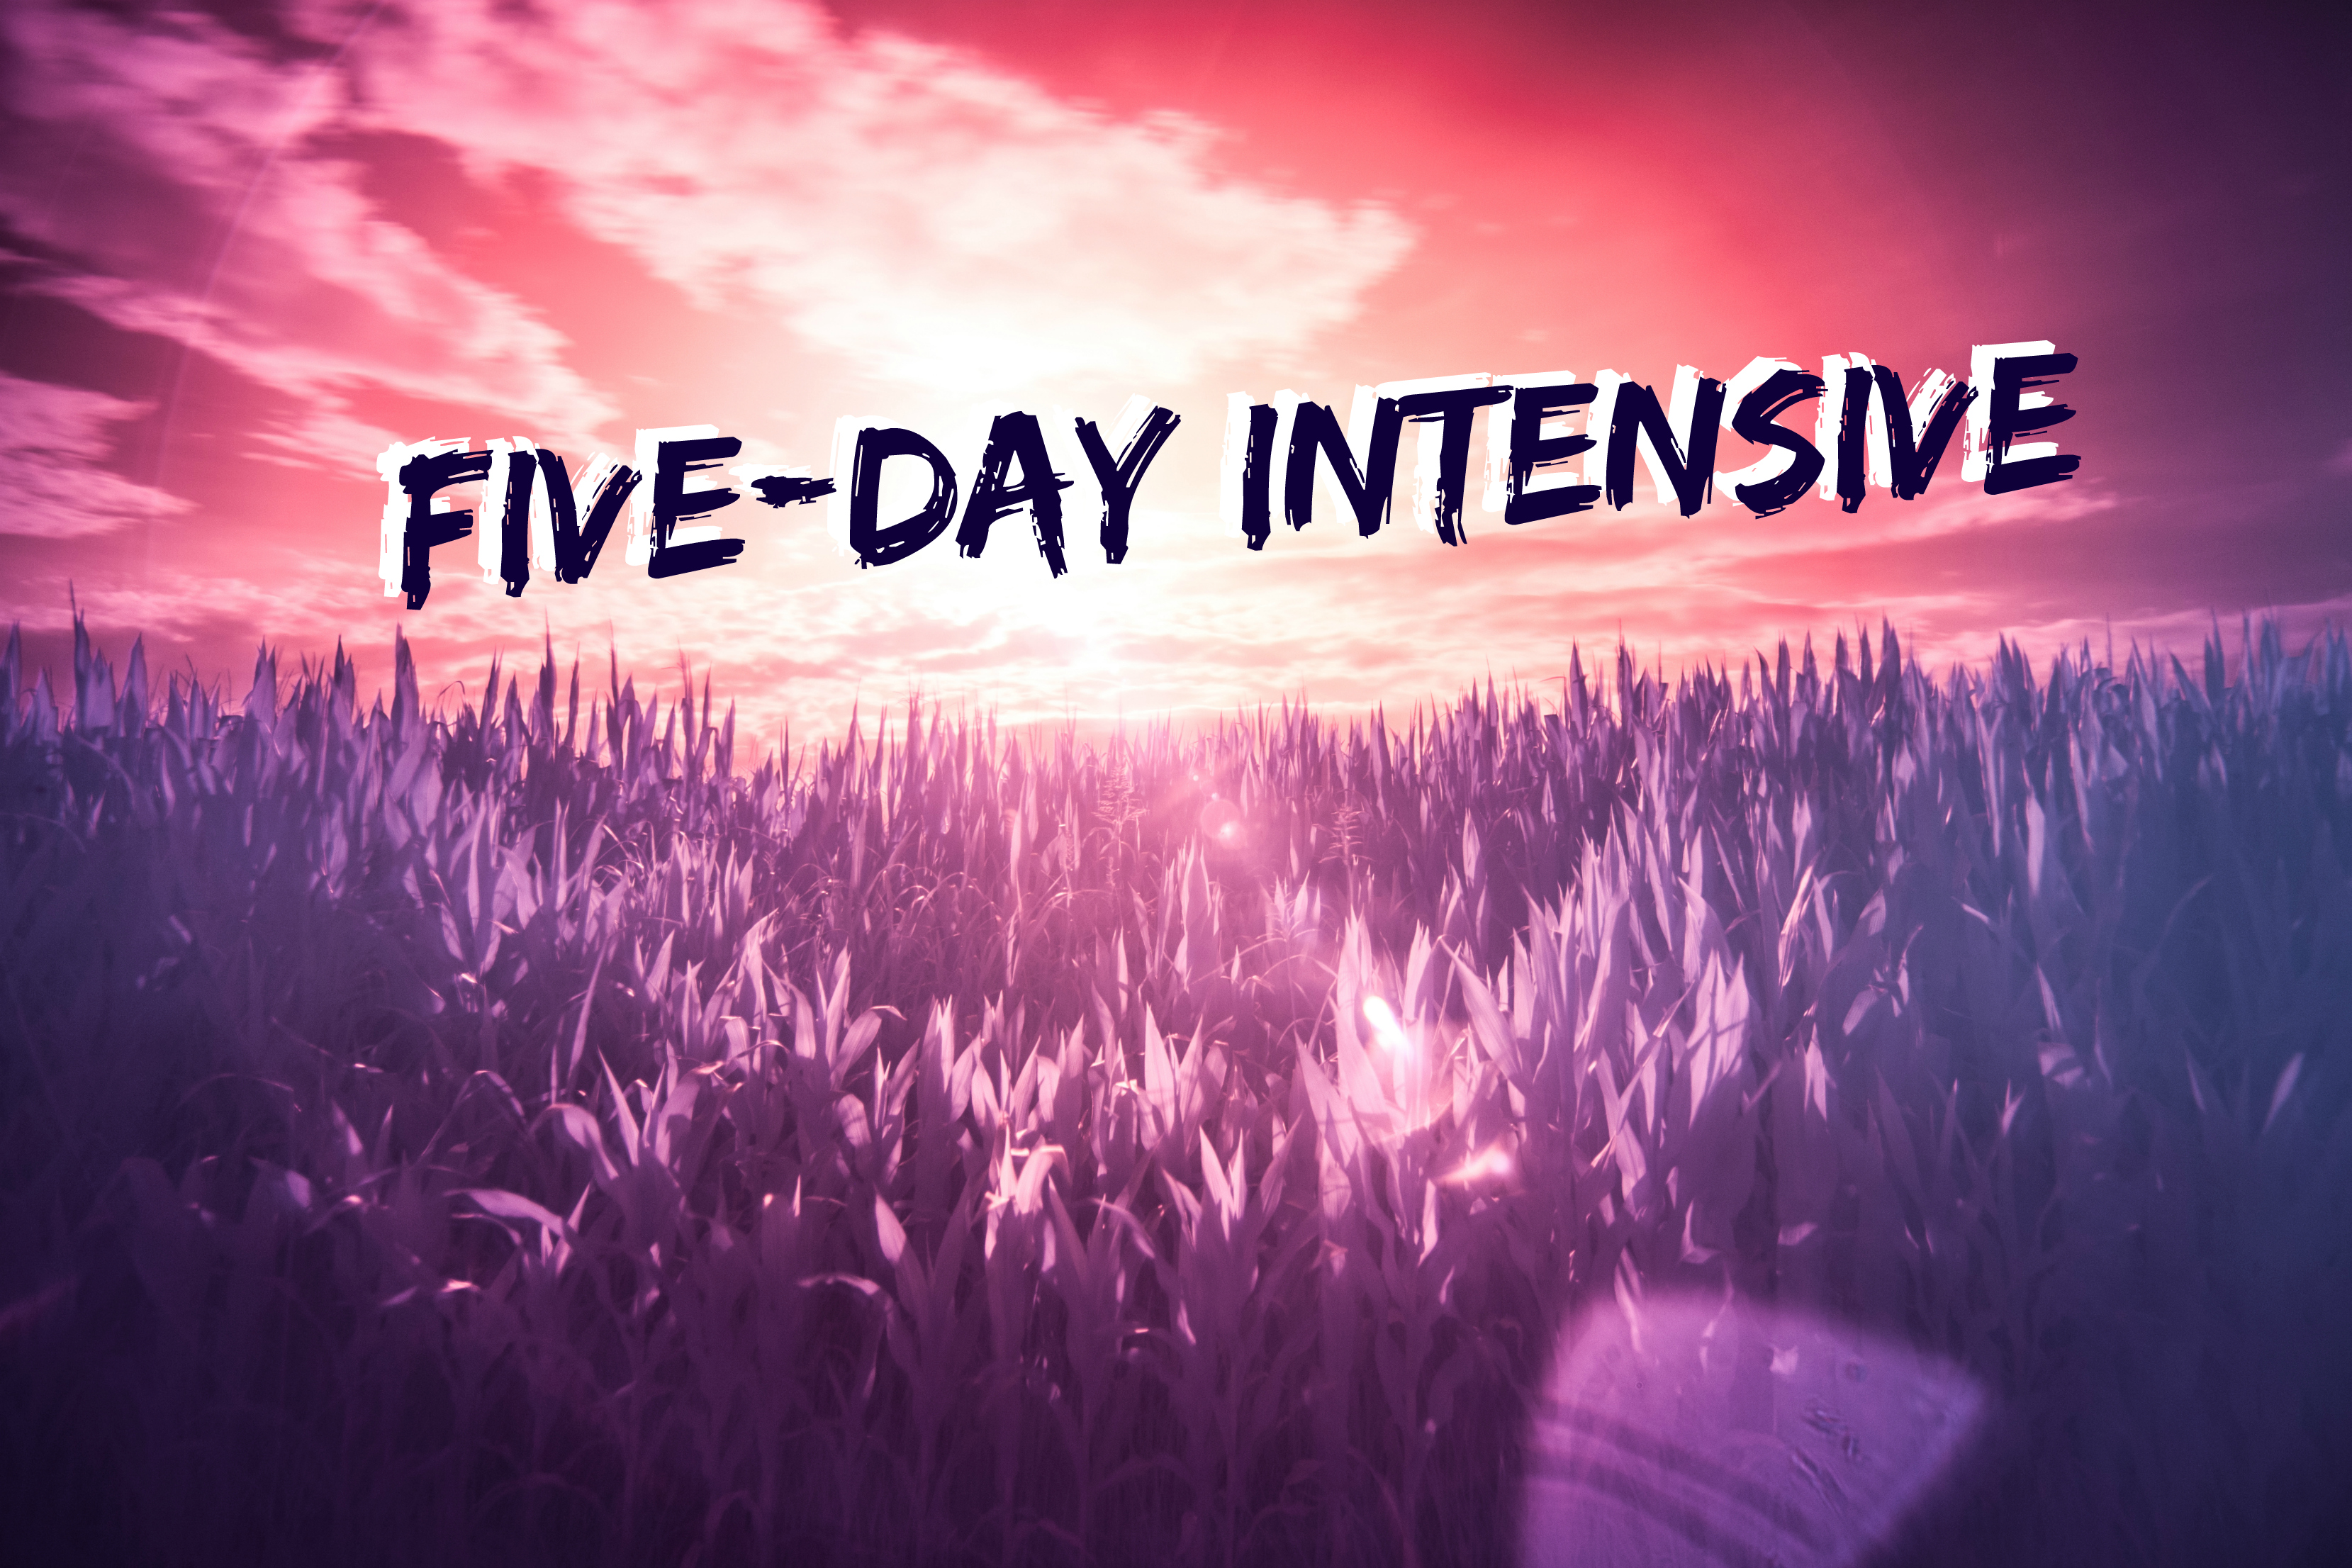 5 day intensive